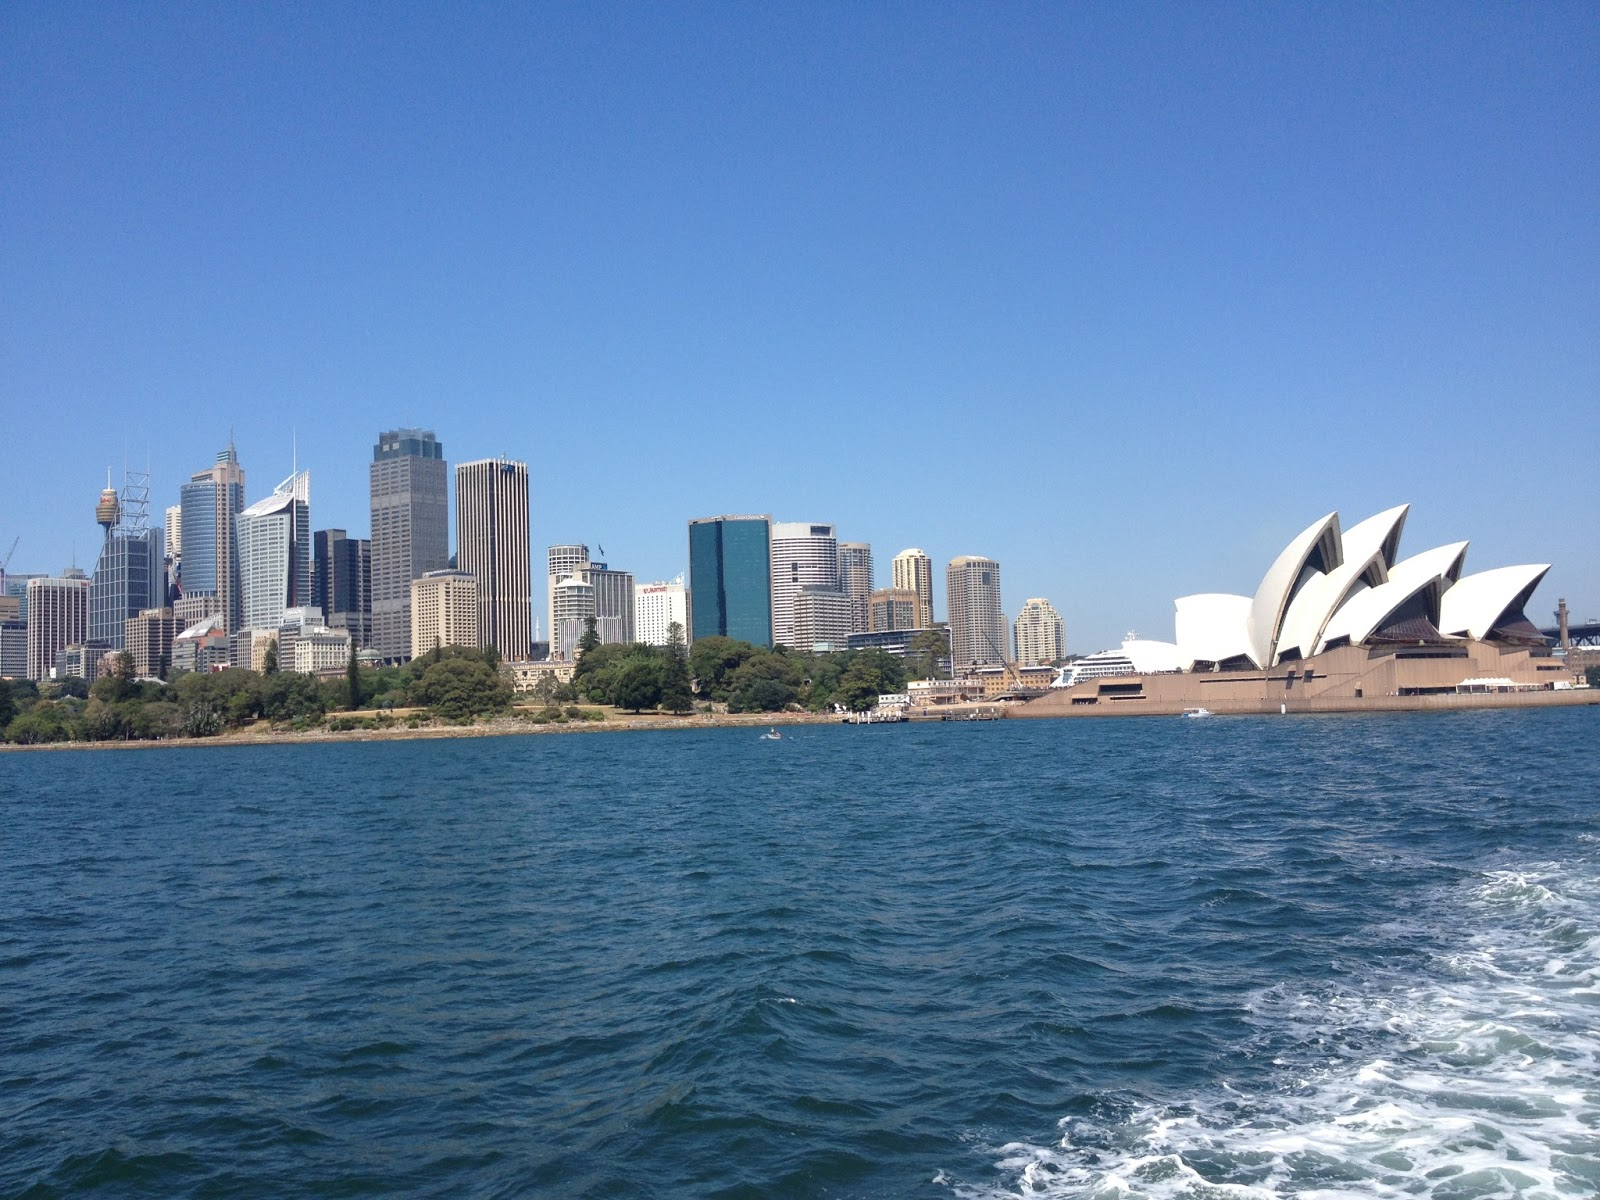 I Went To Sydney To Find P. Sherman 42 Wallaby Way